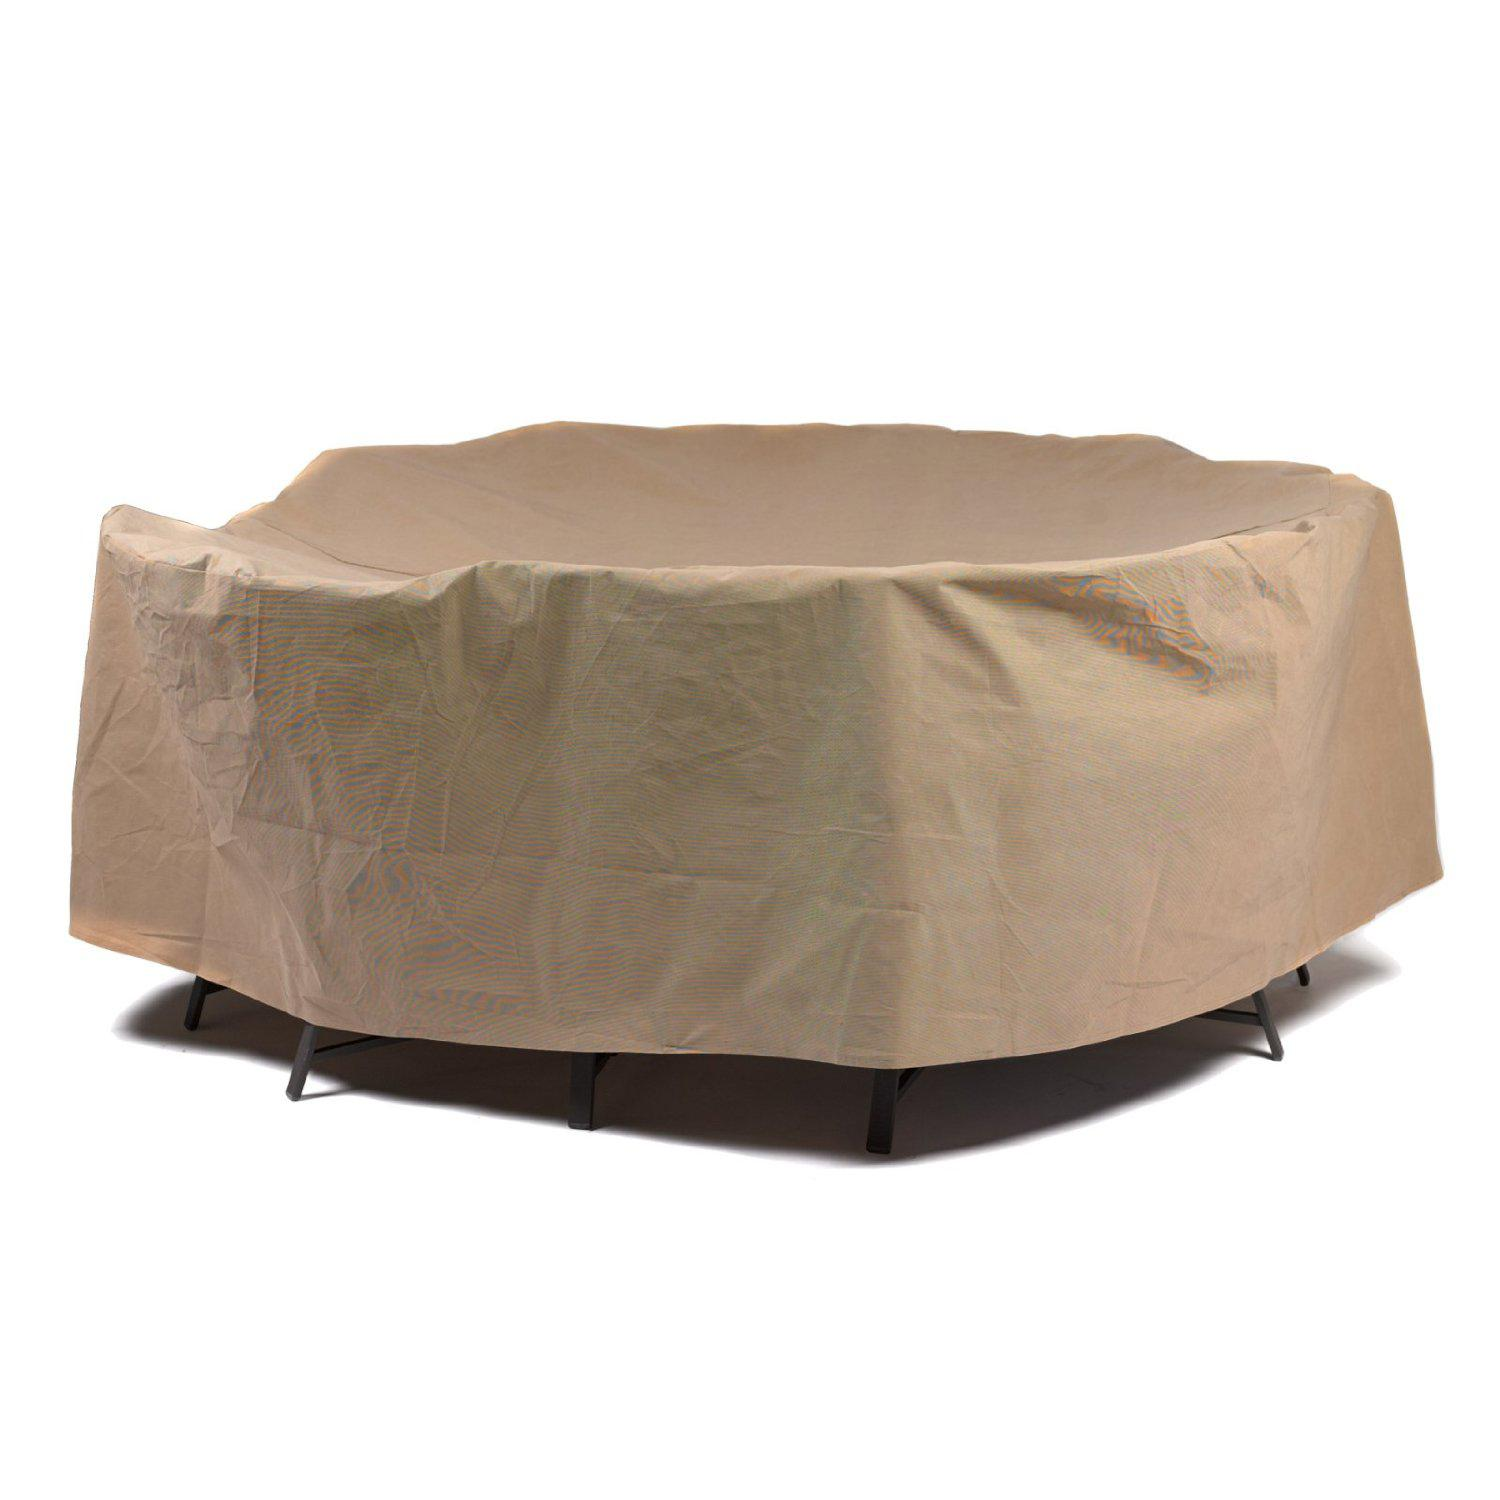 Duck covers essential patio loveseat cover 70 inch for Patio furniture covers amazon ca